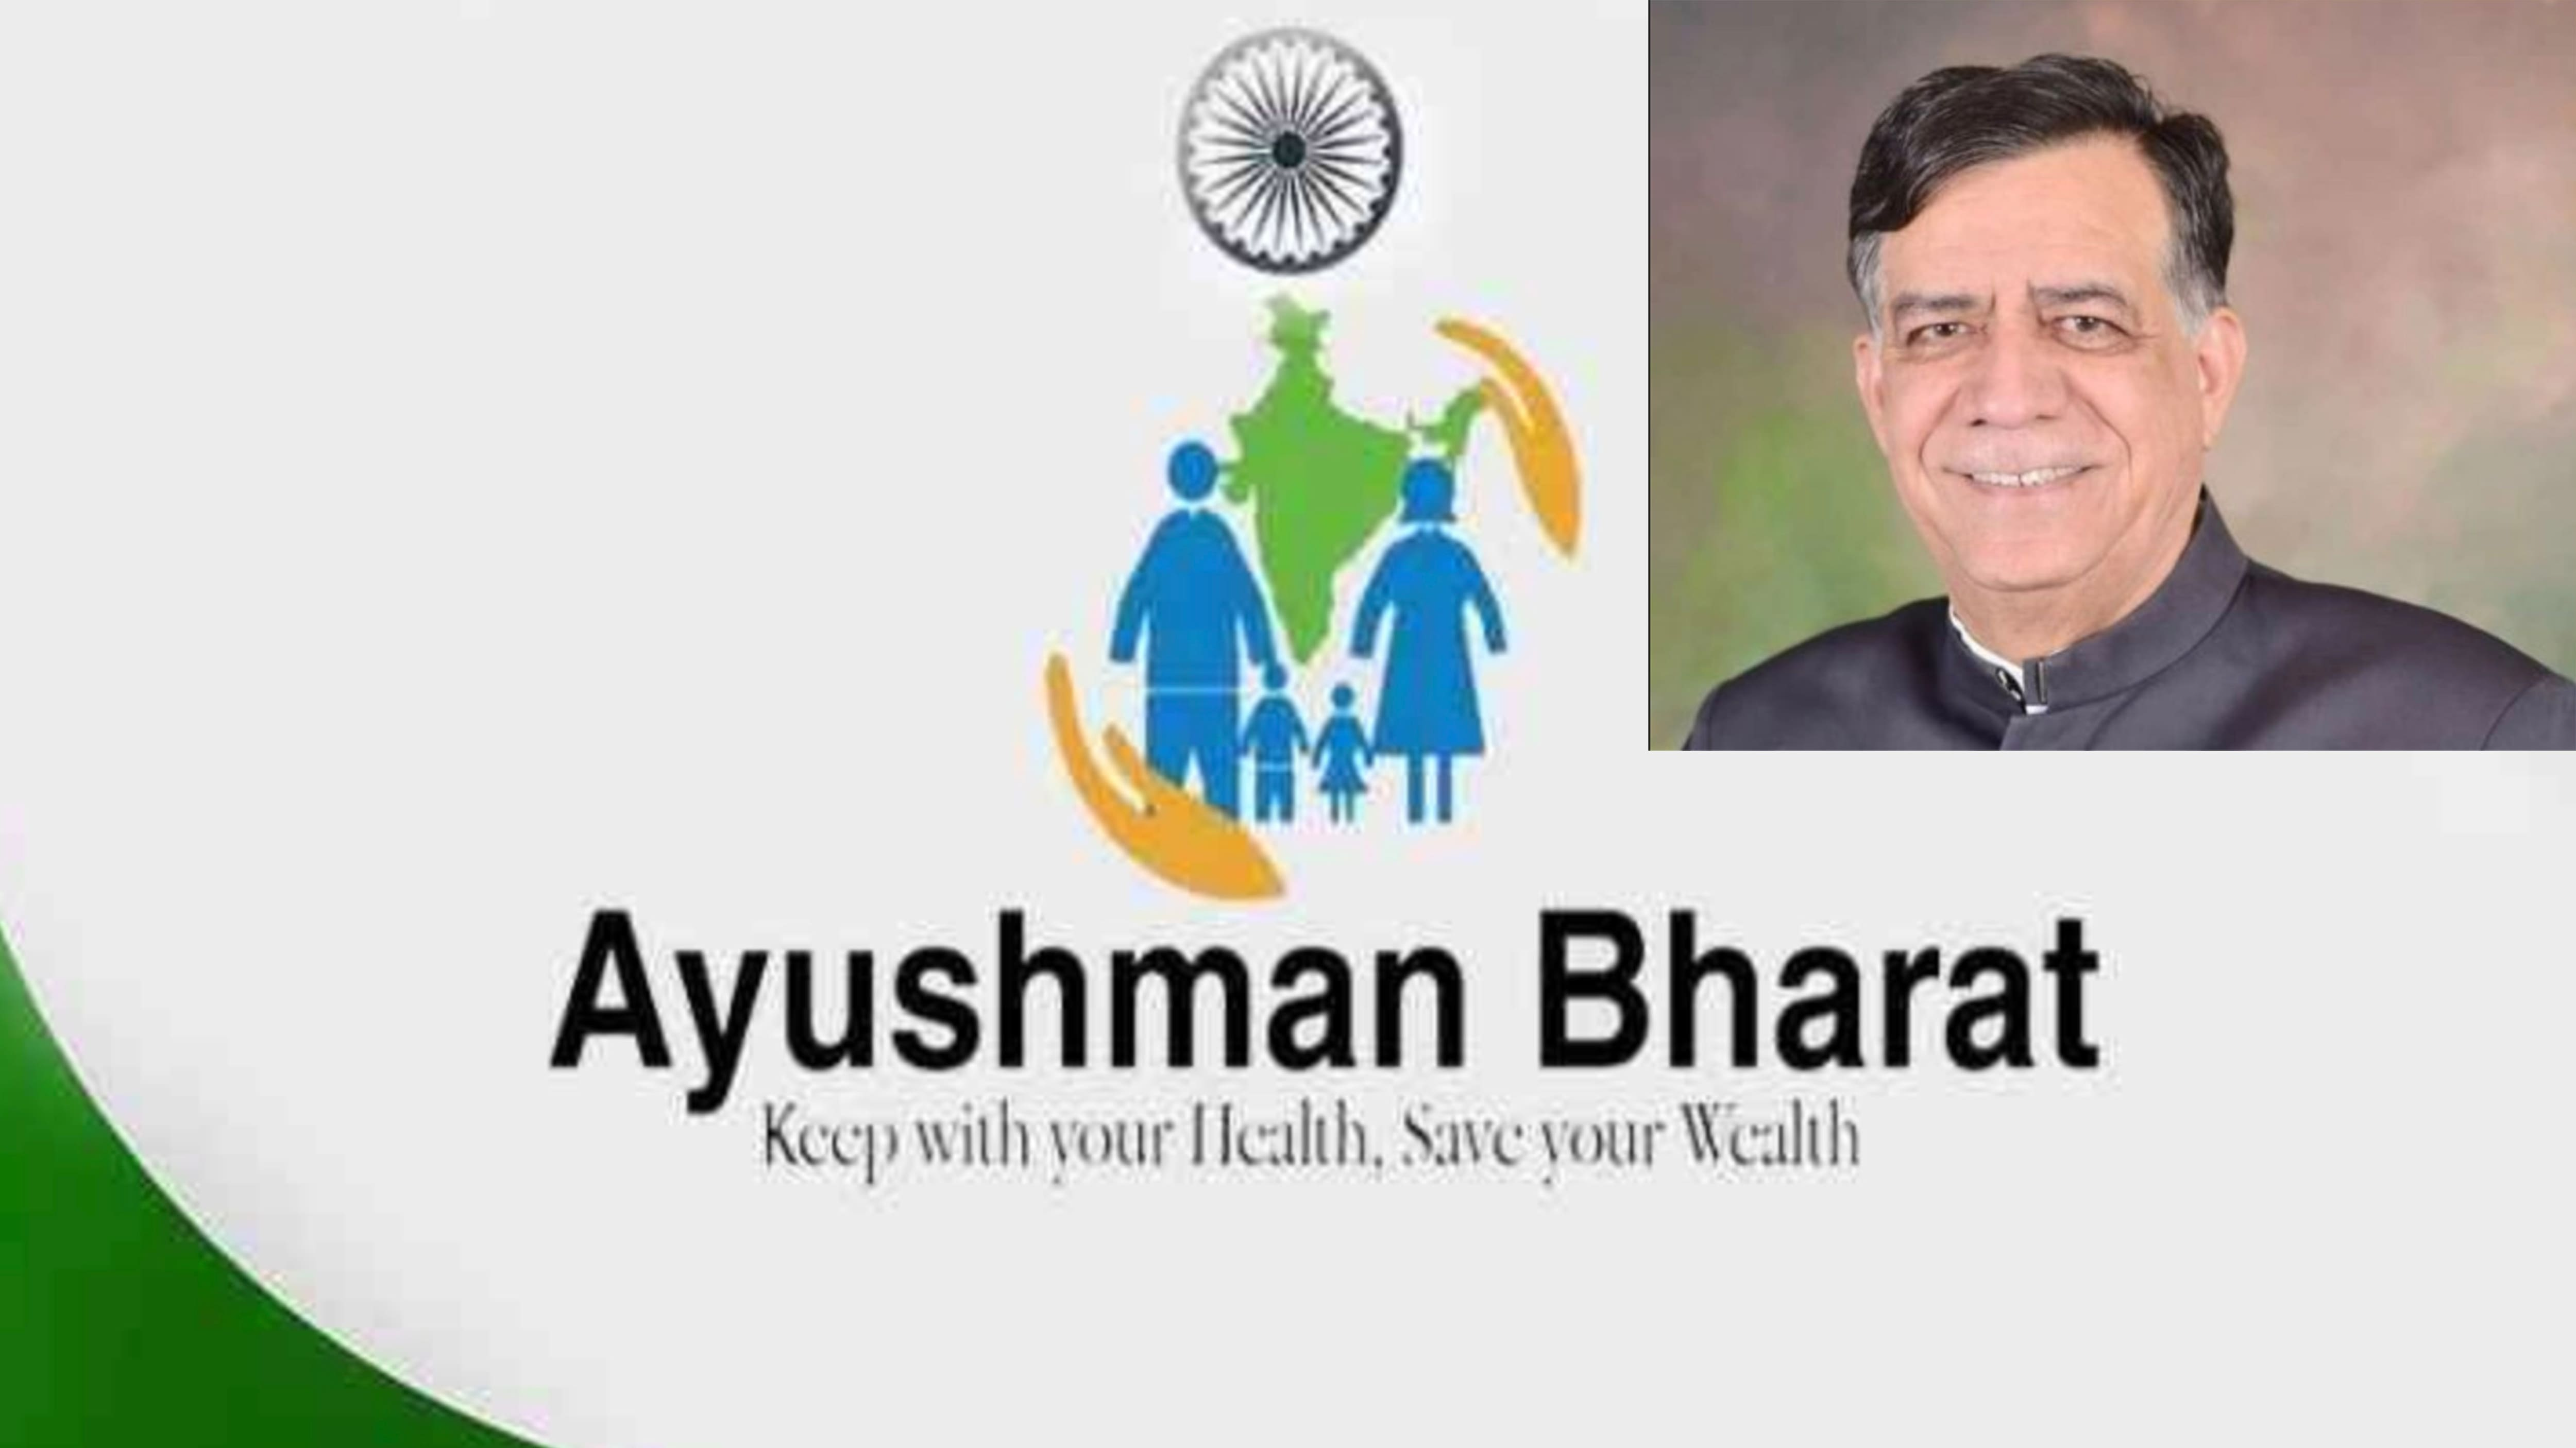 After getting many big names including the UP minister in the beneficiaries of Ayushman Bharat scheme, order of inquiry